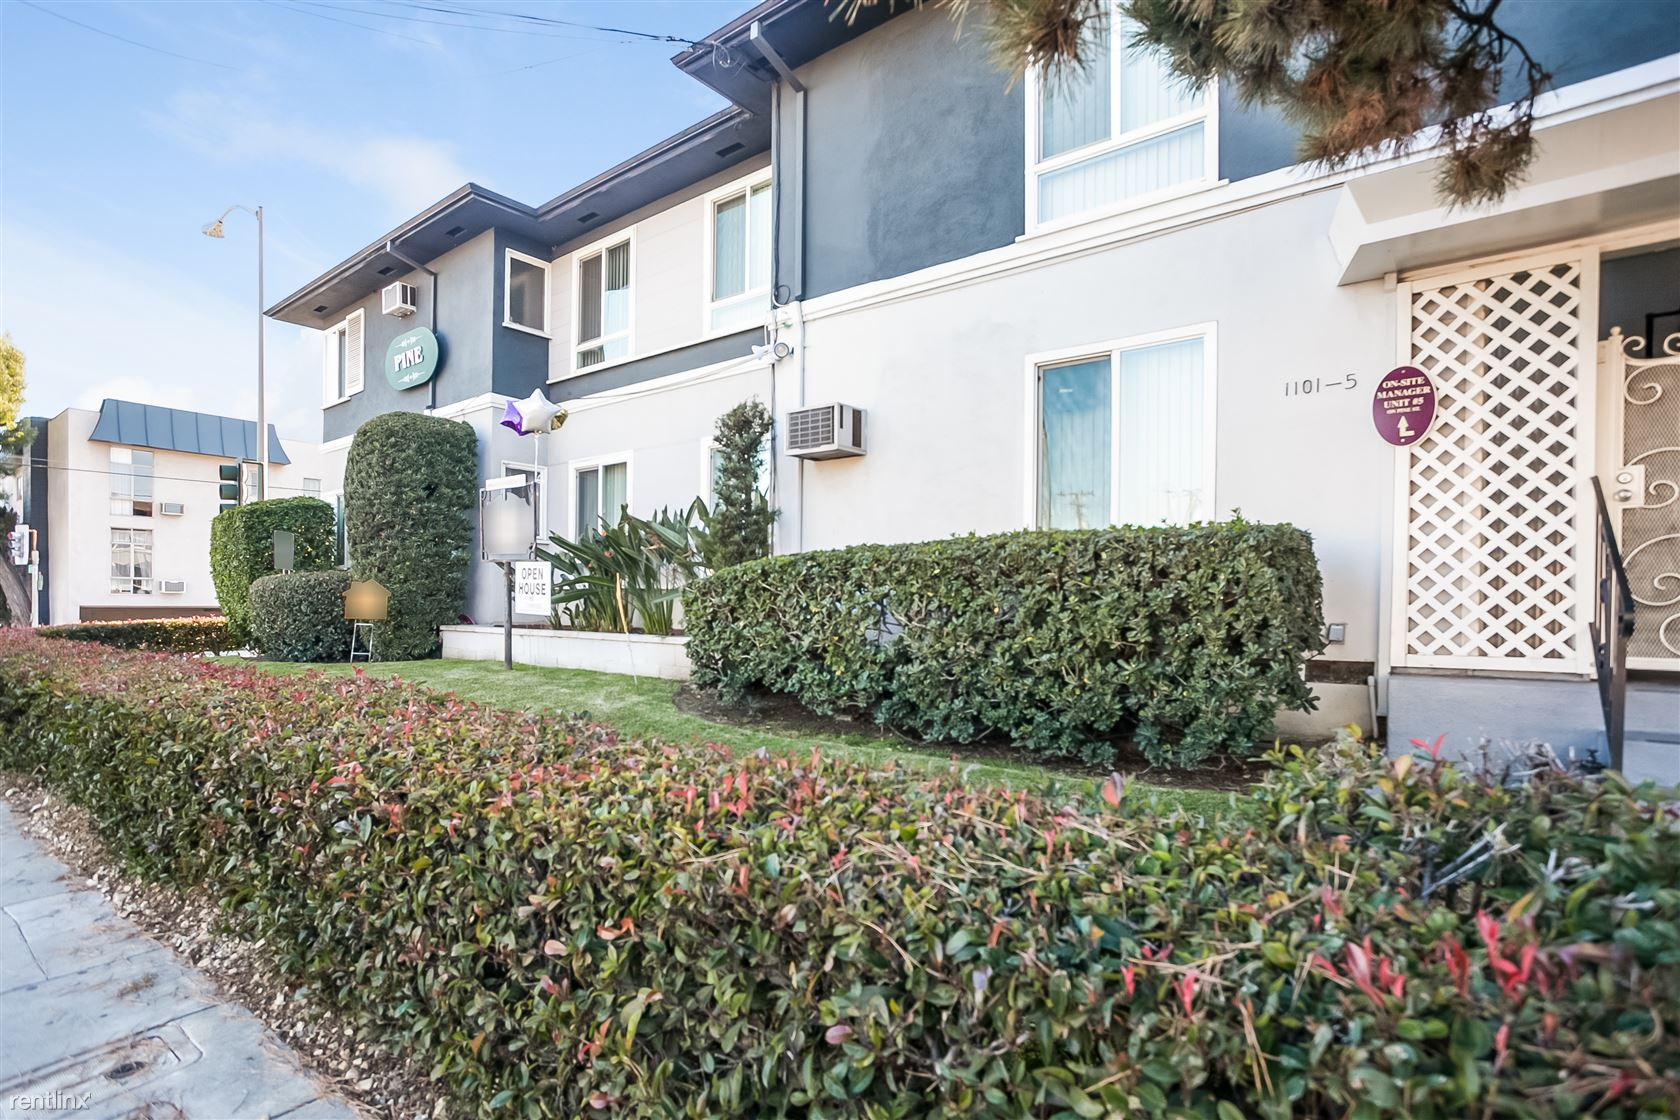 1107 N Garfield Ave - 1695USD / month